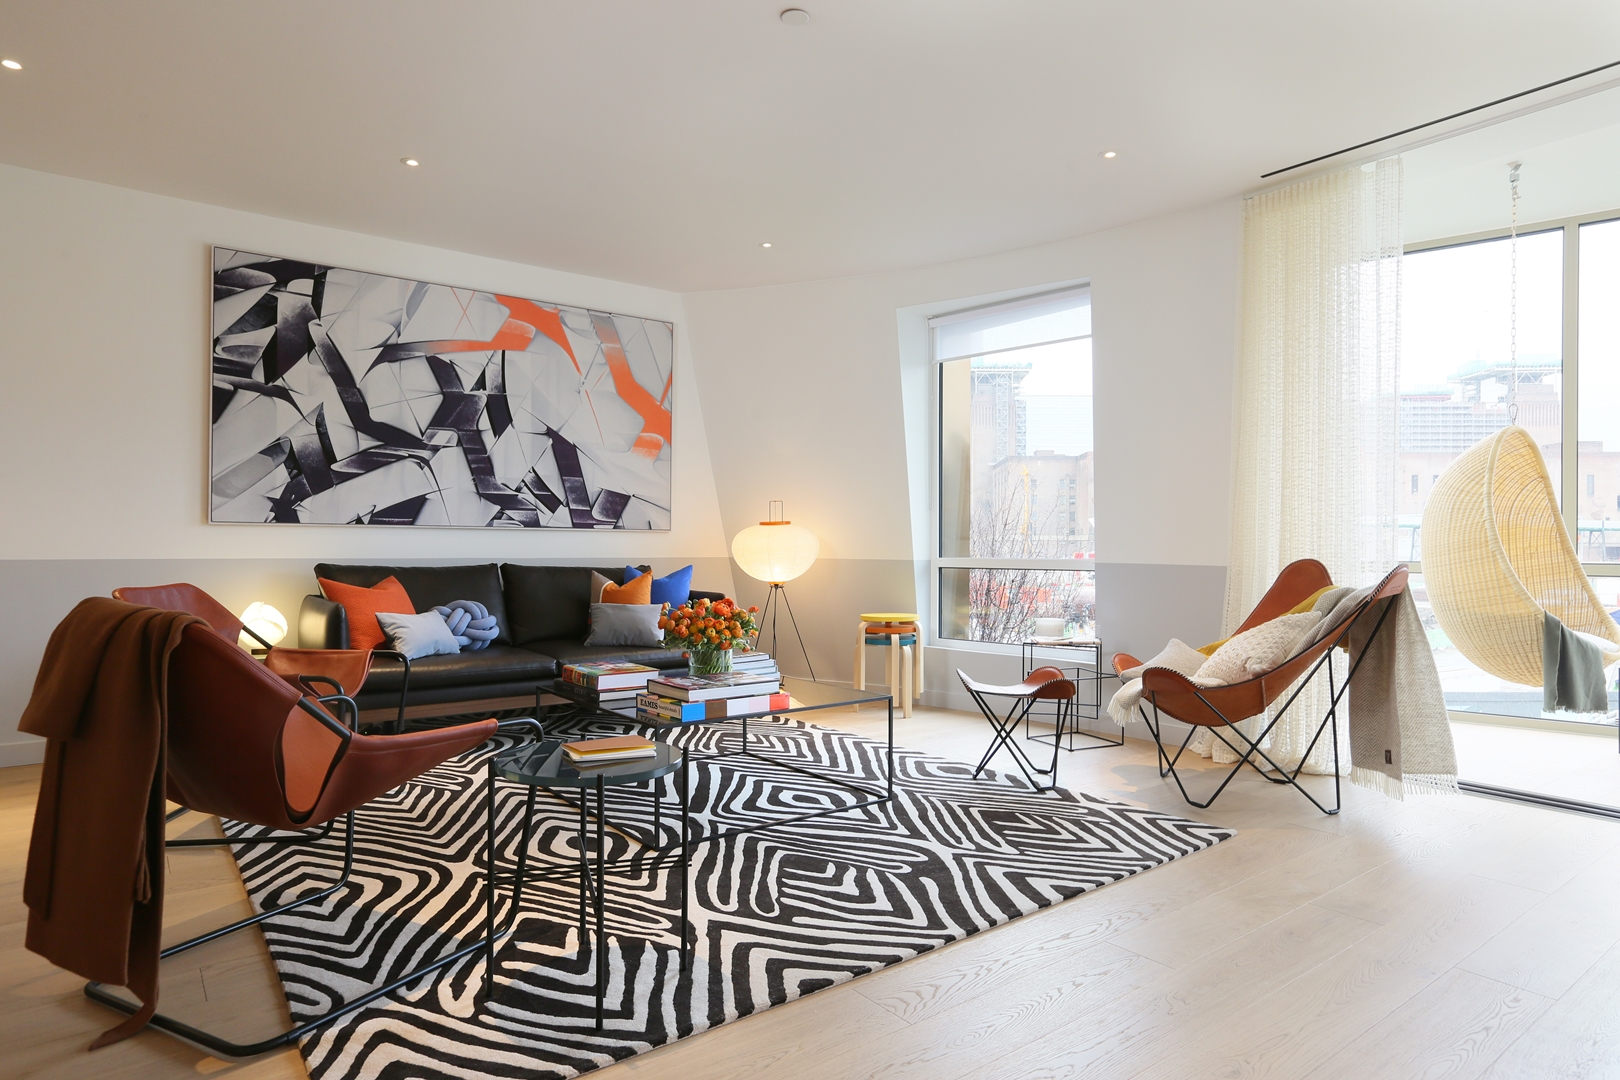 Gehry show apartment living room at Battersea Power Station (Copy)